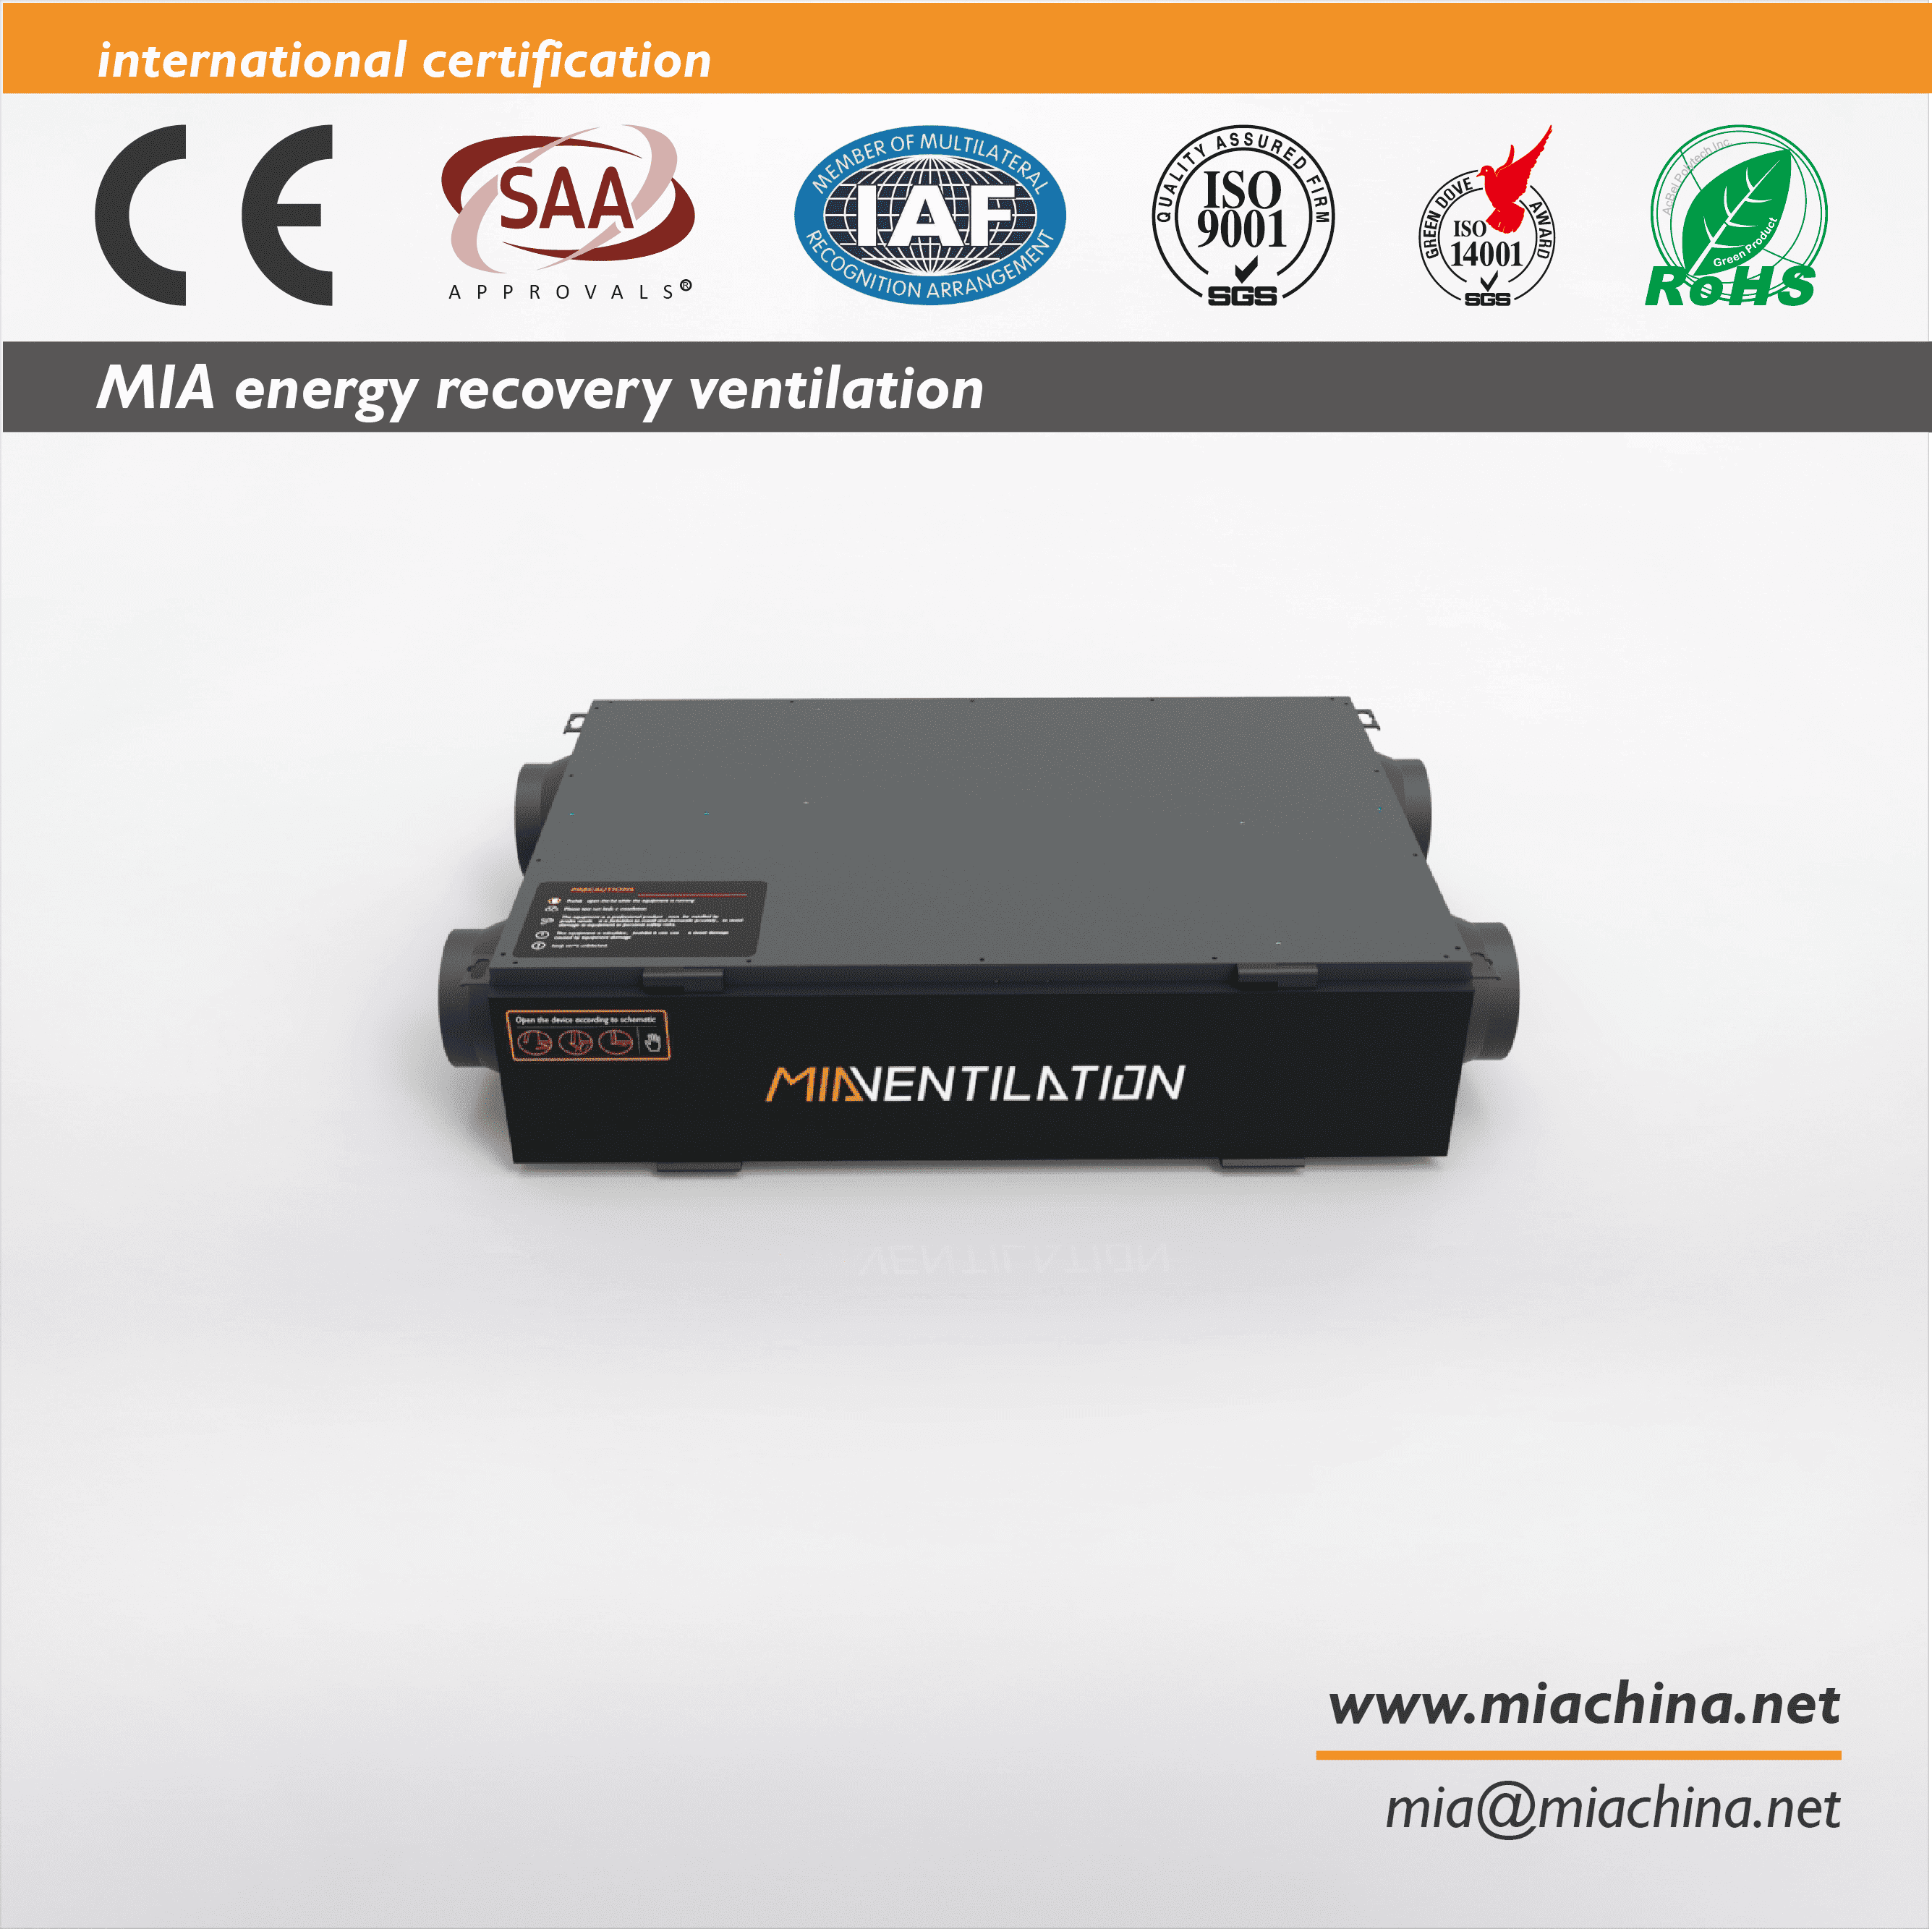 MIA-AHE200GL 2000m3/h Carbon & HEPA Filter For Home Console Type Energy Recovery Ventilation System